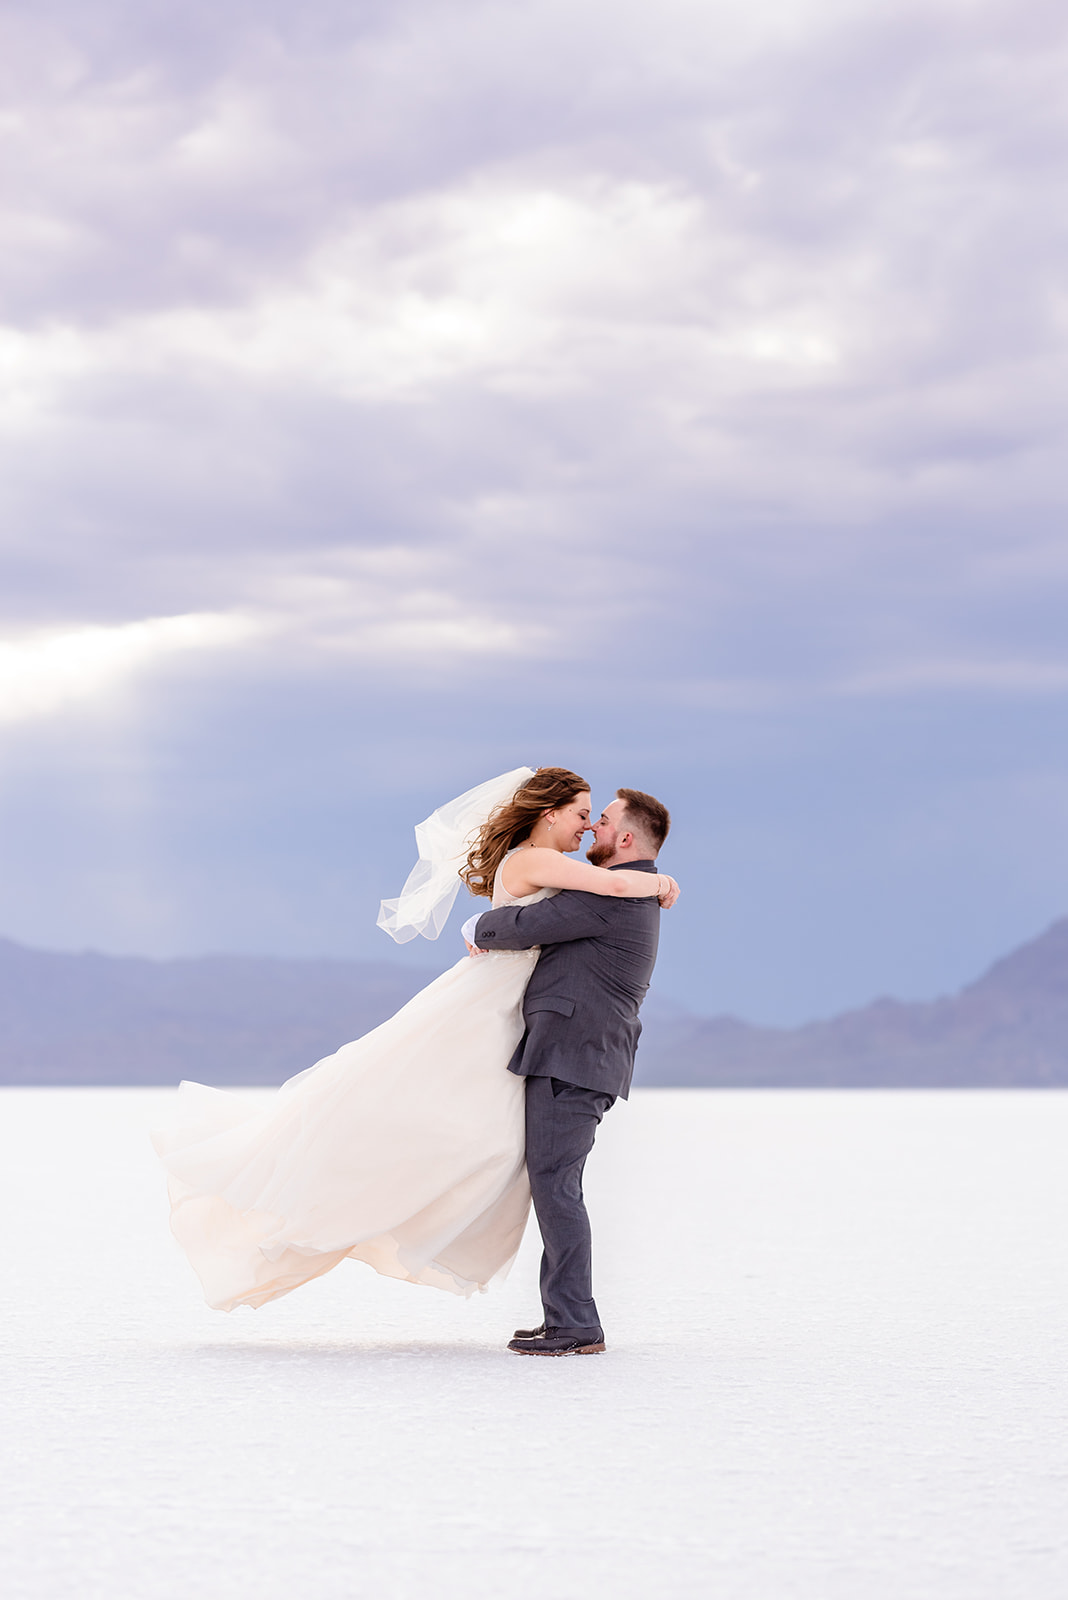 Bride and Groom pick me up pose portraits at the Bonneville Salt Falts in Utah. Grey suit and blue tie combo. Ivory and Gold wedding dress. Taken by Coley Cook Photography.